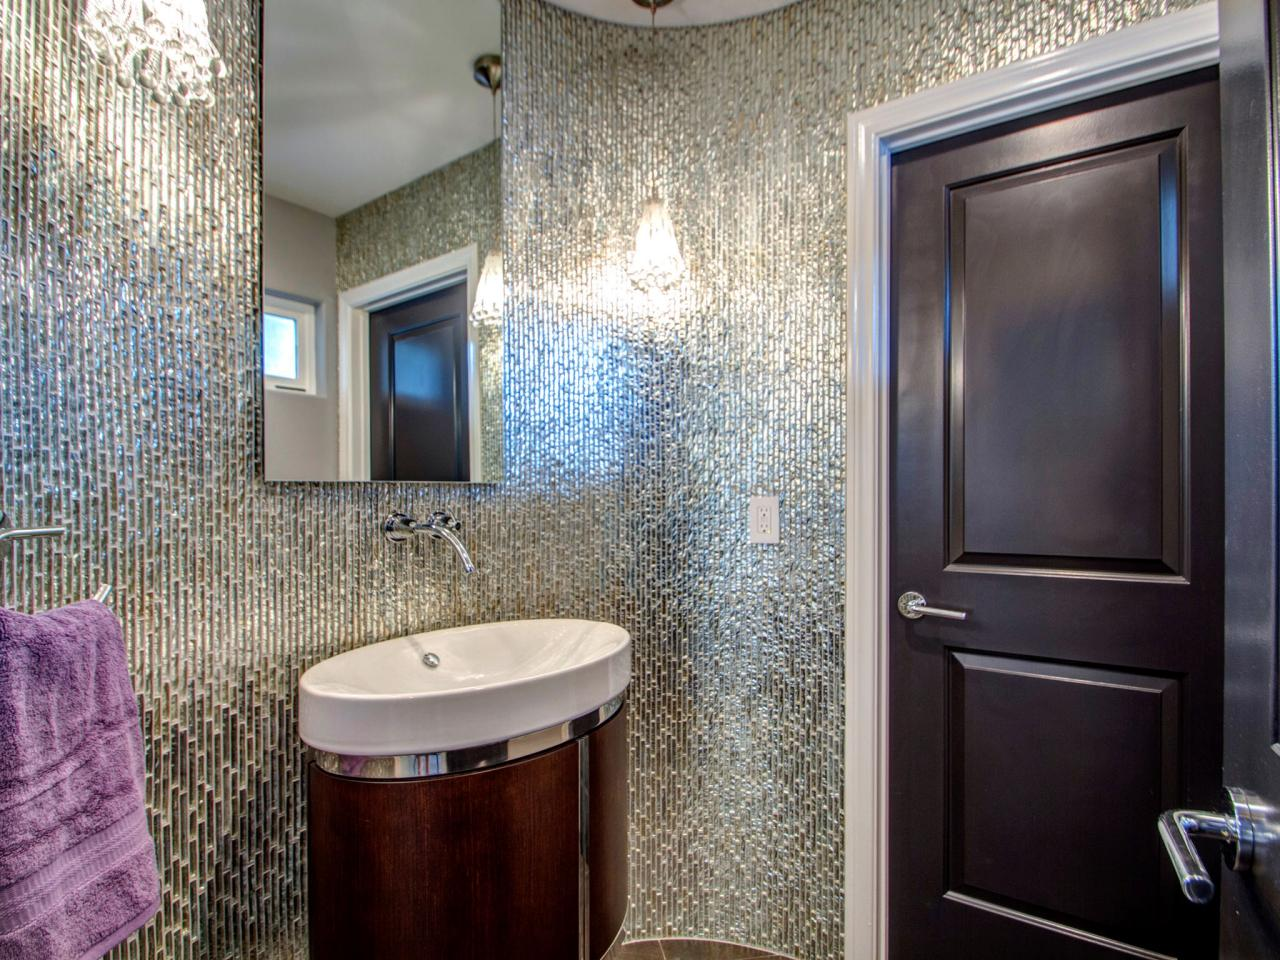 DP_Jackson-Design-And-Remodeling-gray-contemporary-bathroom-tile_v.jpg.rend.hgtvcom.1280.960